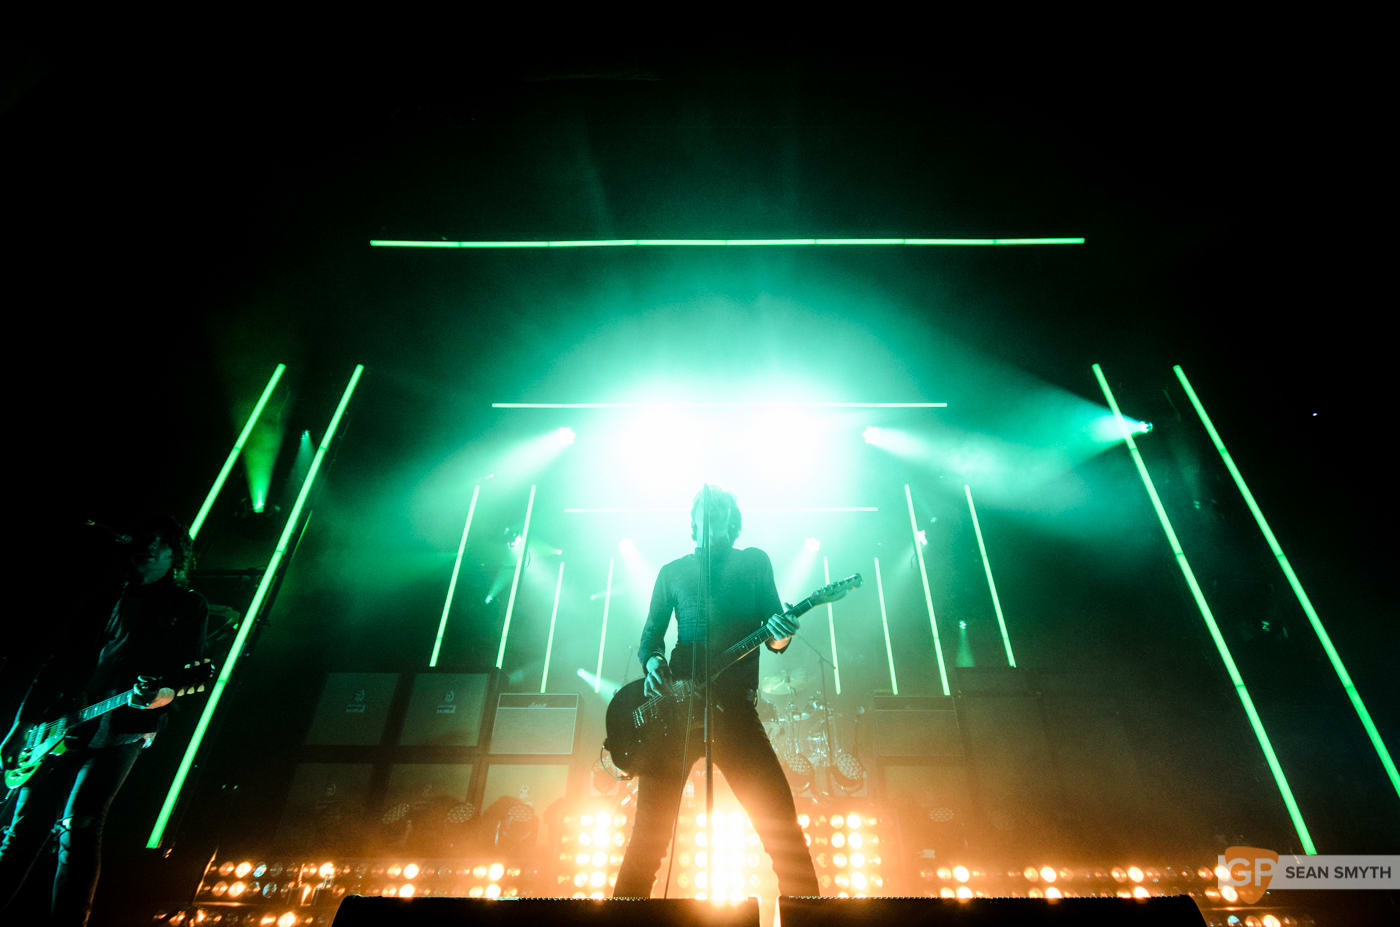 catfish-and-the-bottlemen-at-the-olympia-theatre-by-sean-smyth-20-11-16-18-of-27